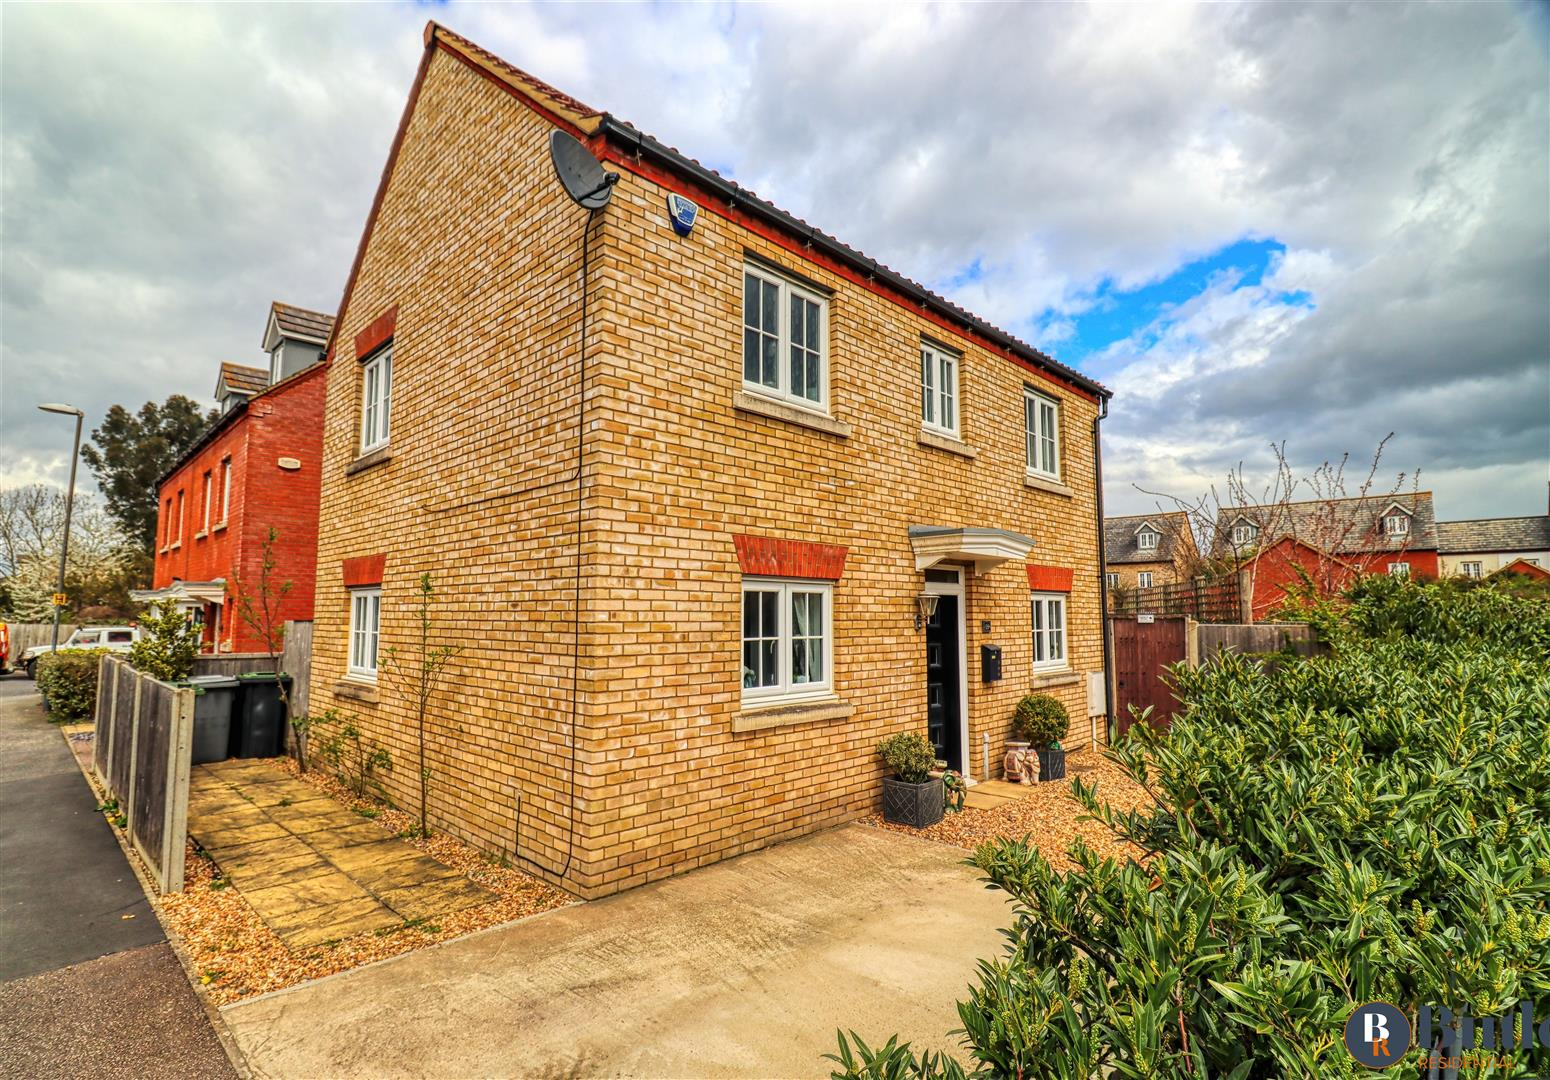 3 bed detached house for sale in Birch Grove, Henlow - Property Image 1